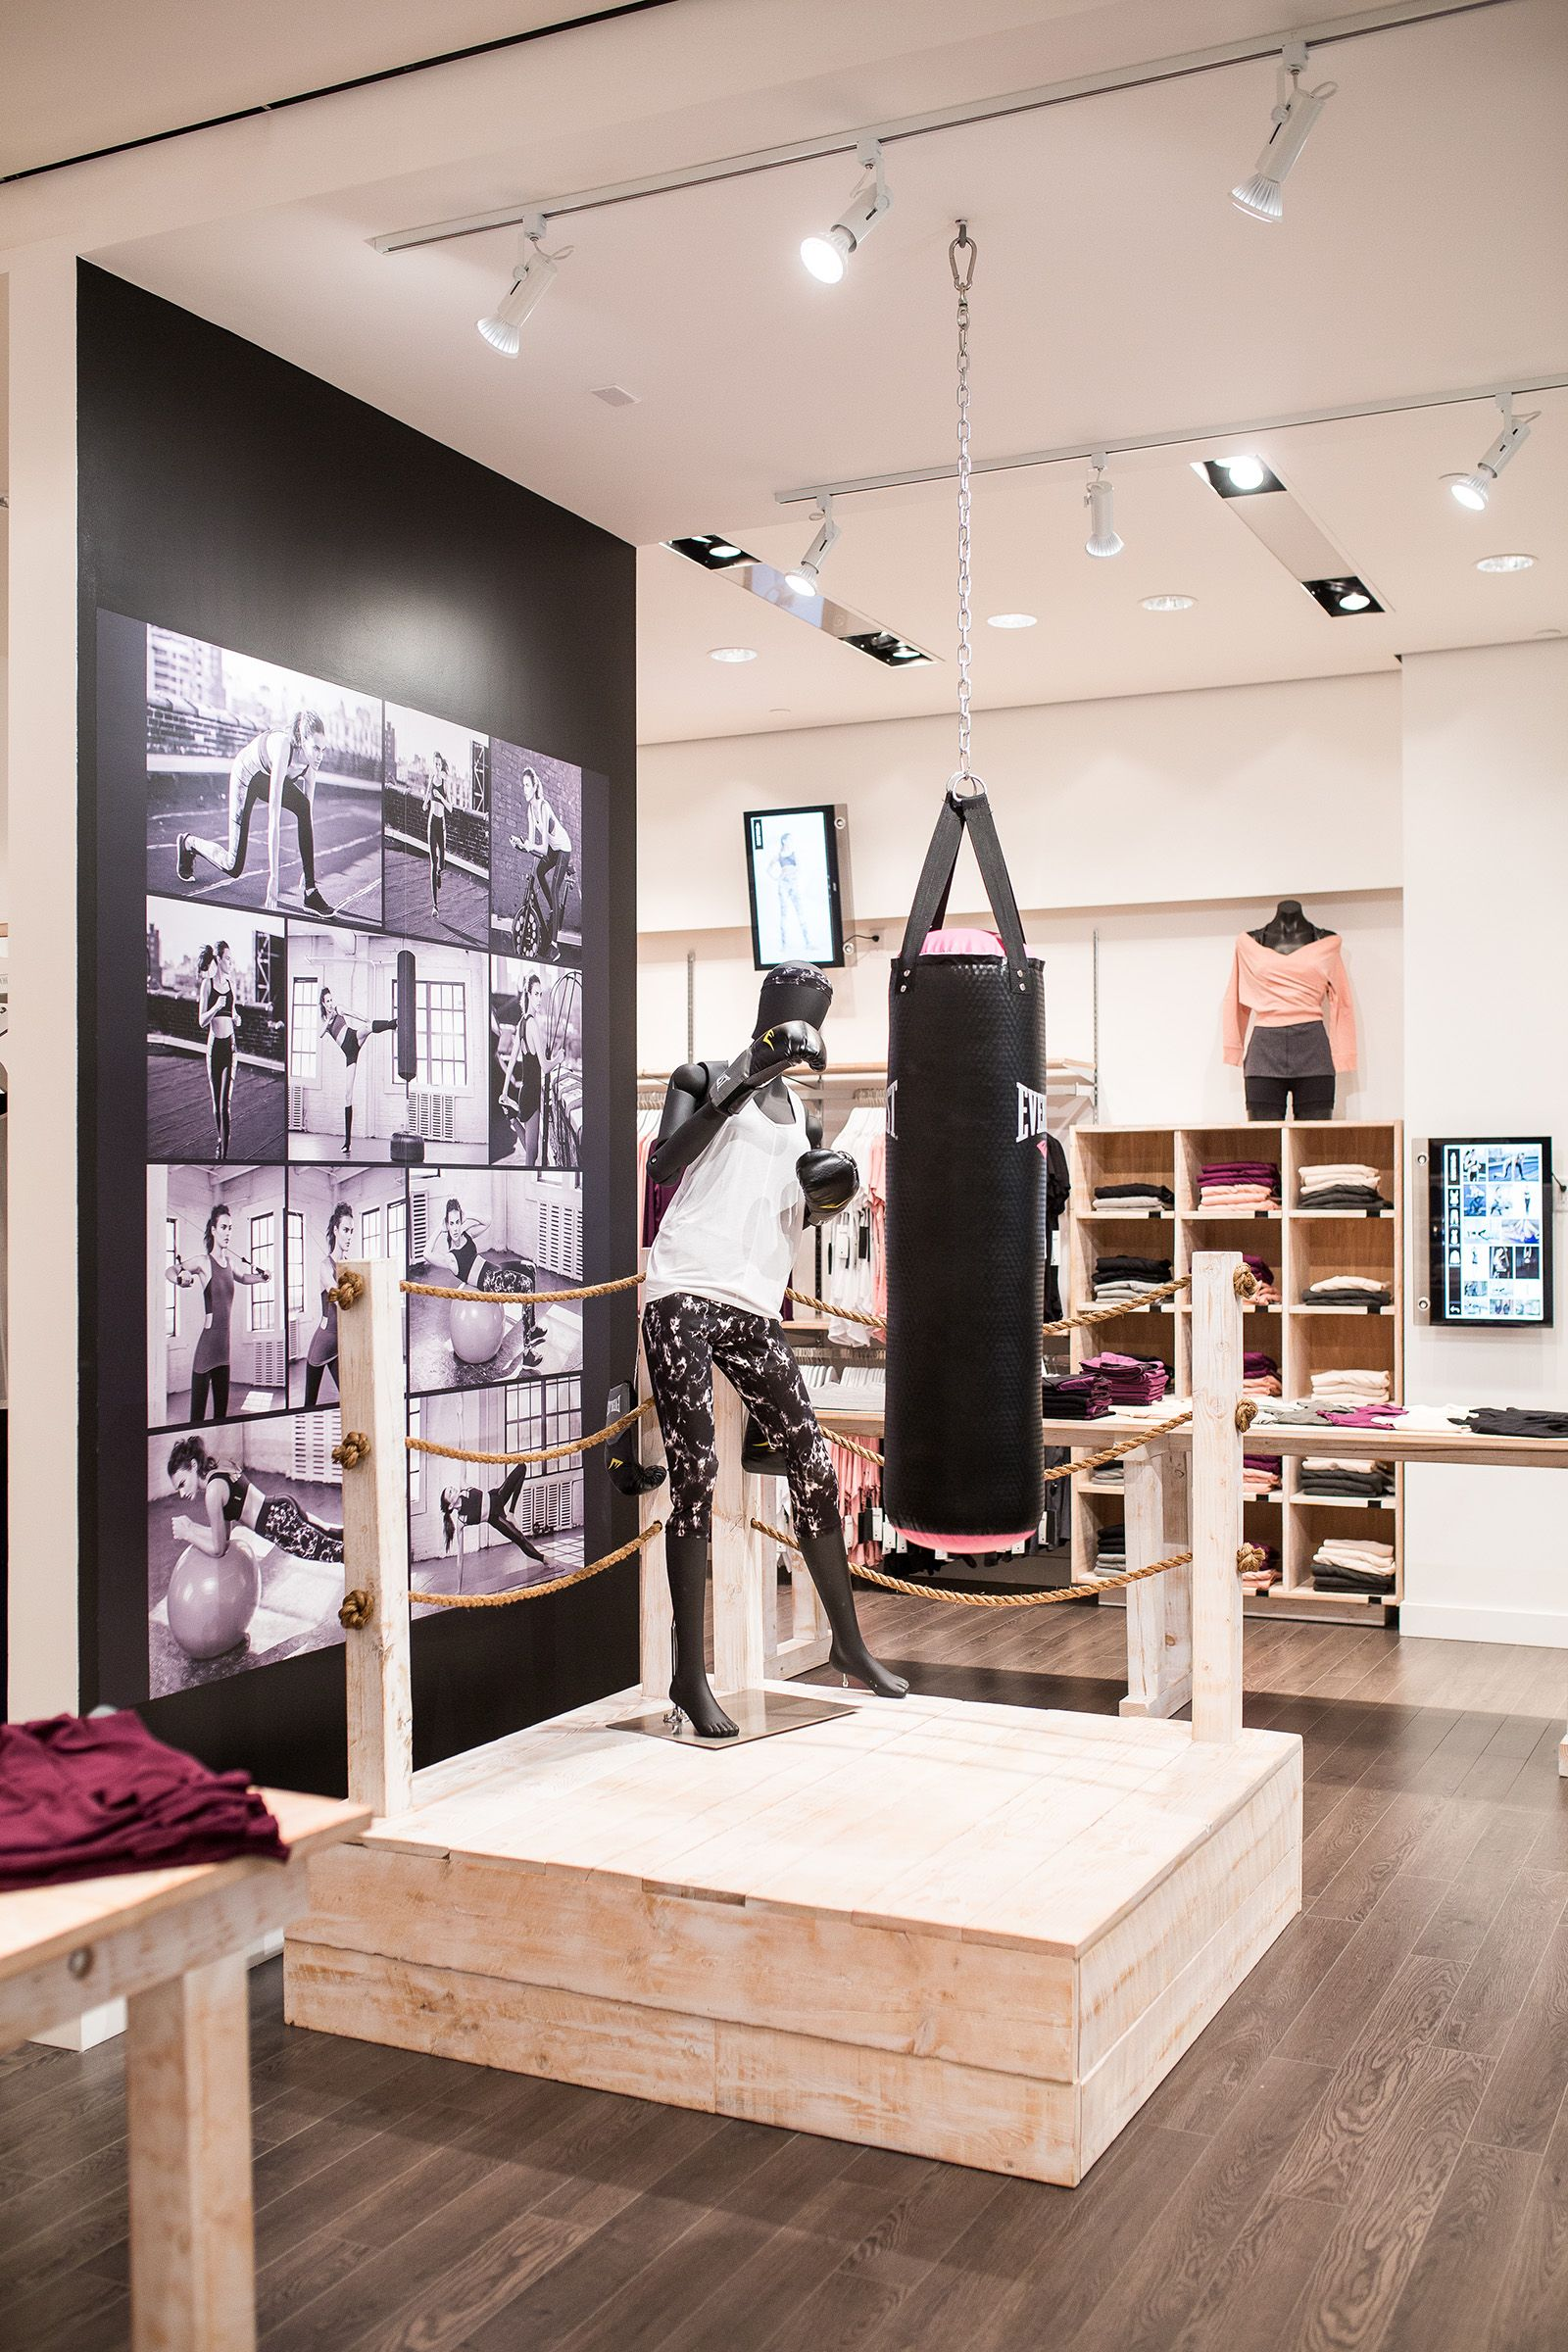 Karma in Vancouver Pop up shop design by Cutler a retail interior